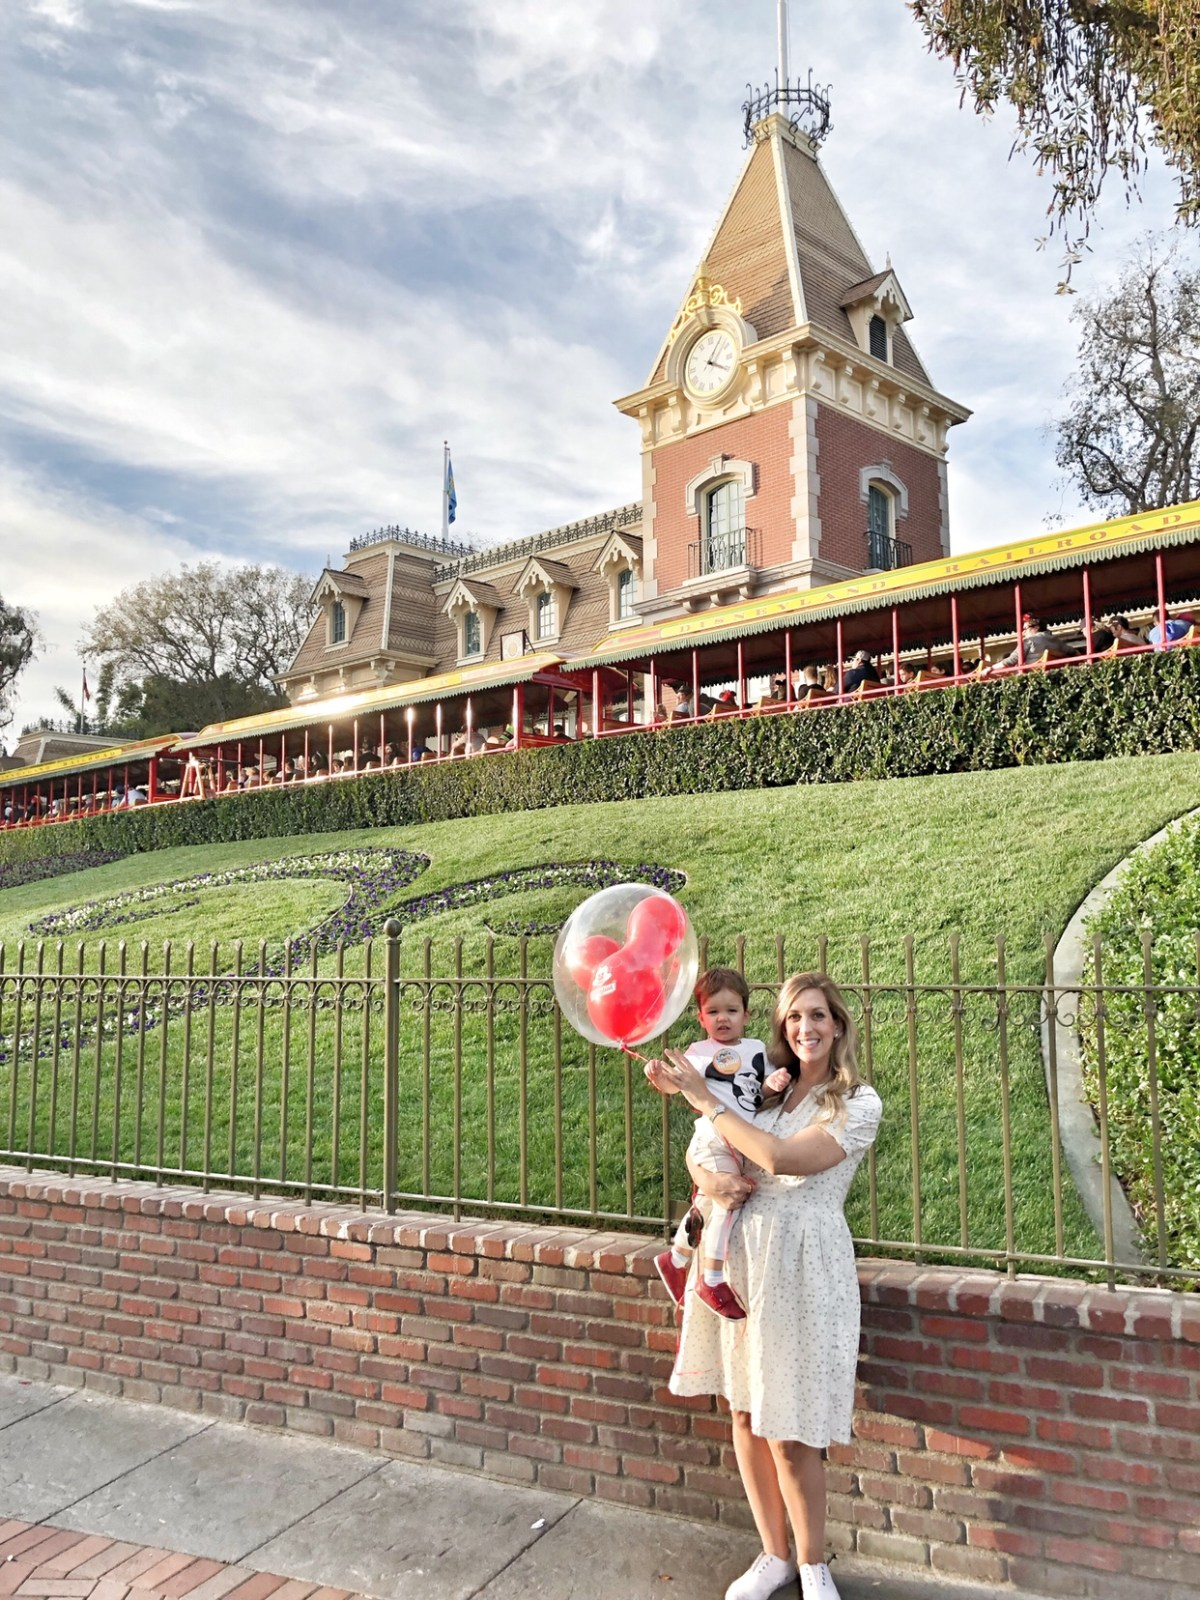 Top 10 Disneyland Rides for Toddlers and Ones to Avoid!